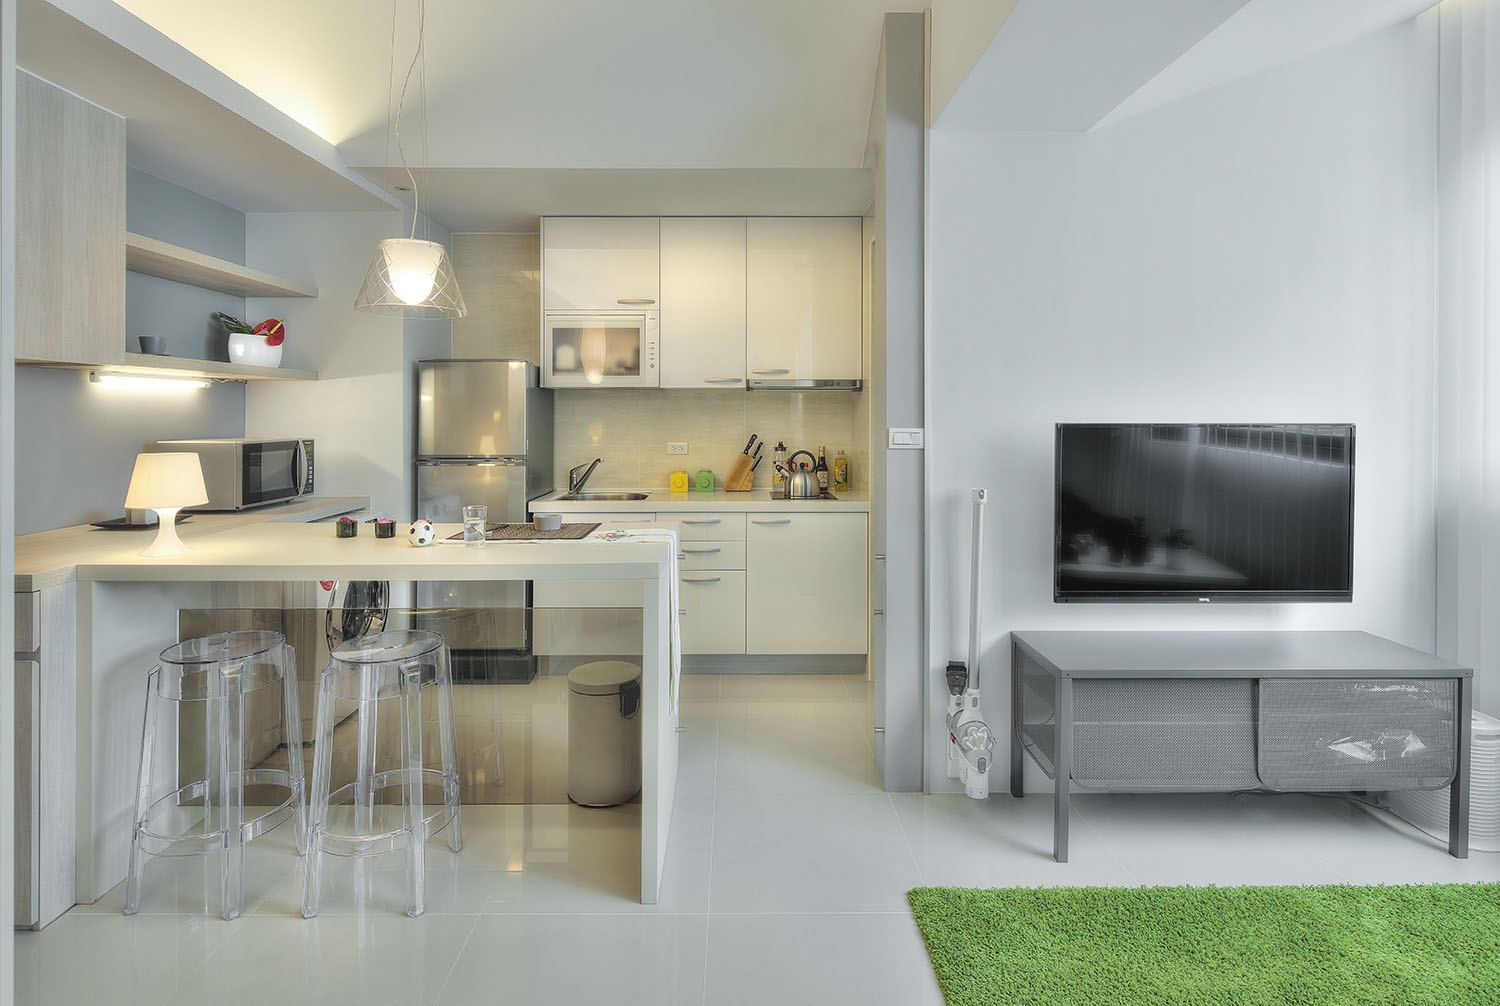 Studio Apartment Design Small Taipei Studio Apartment With Clever Efficient Design